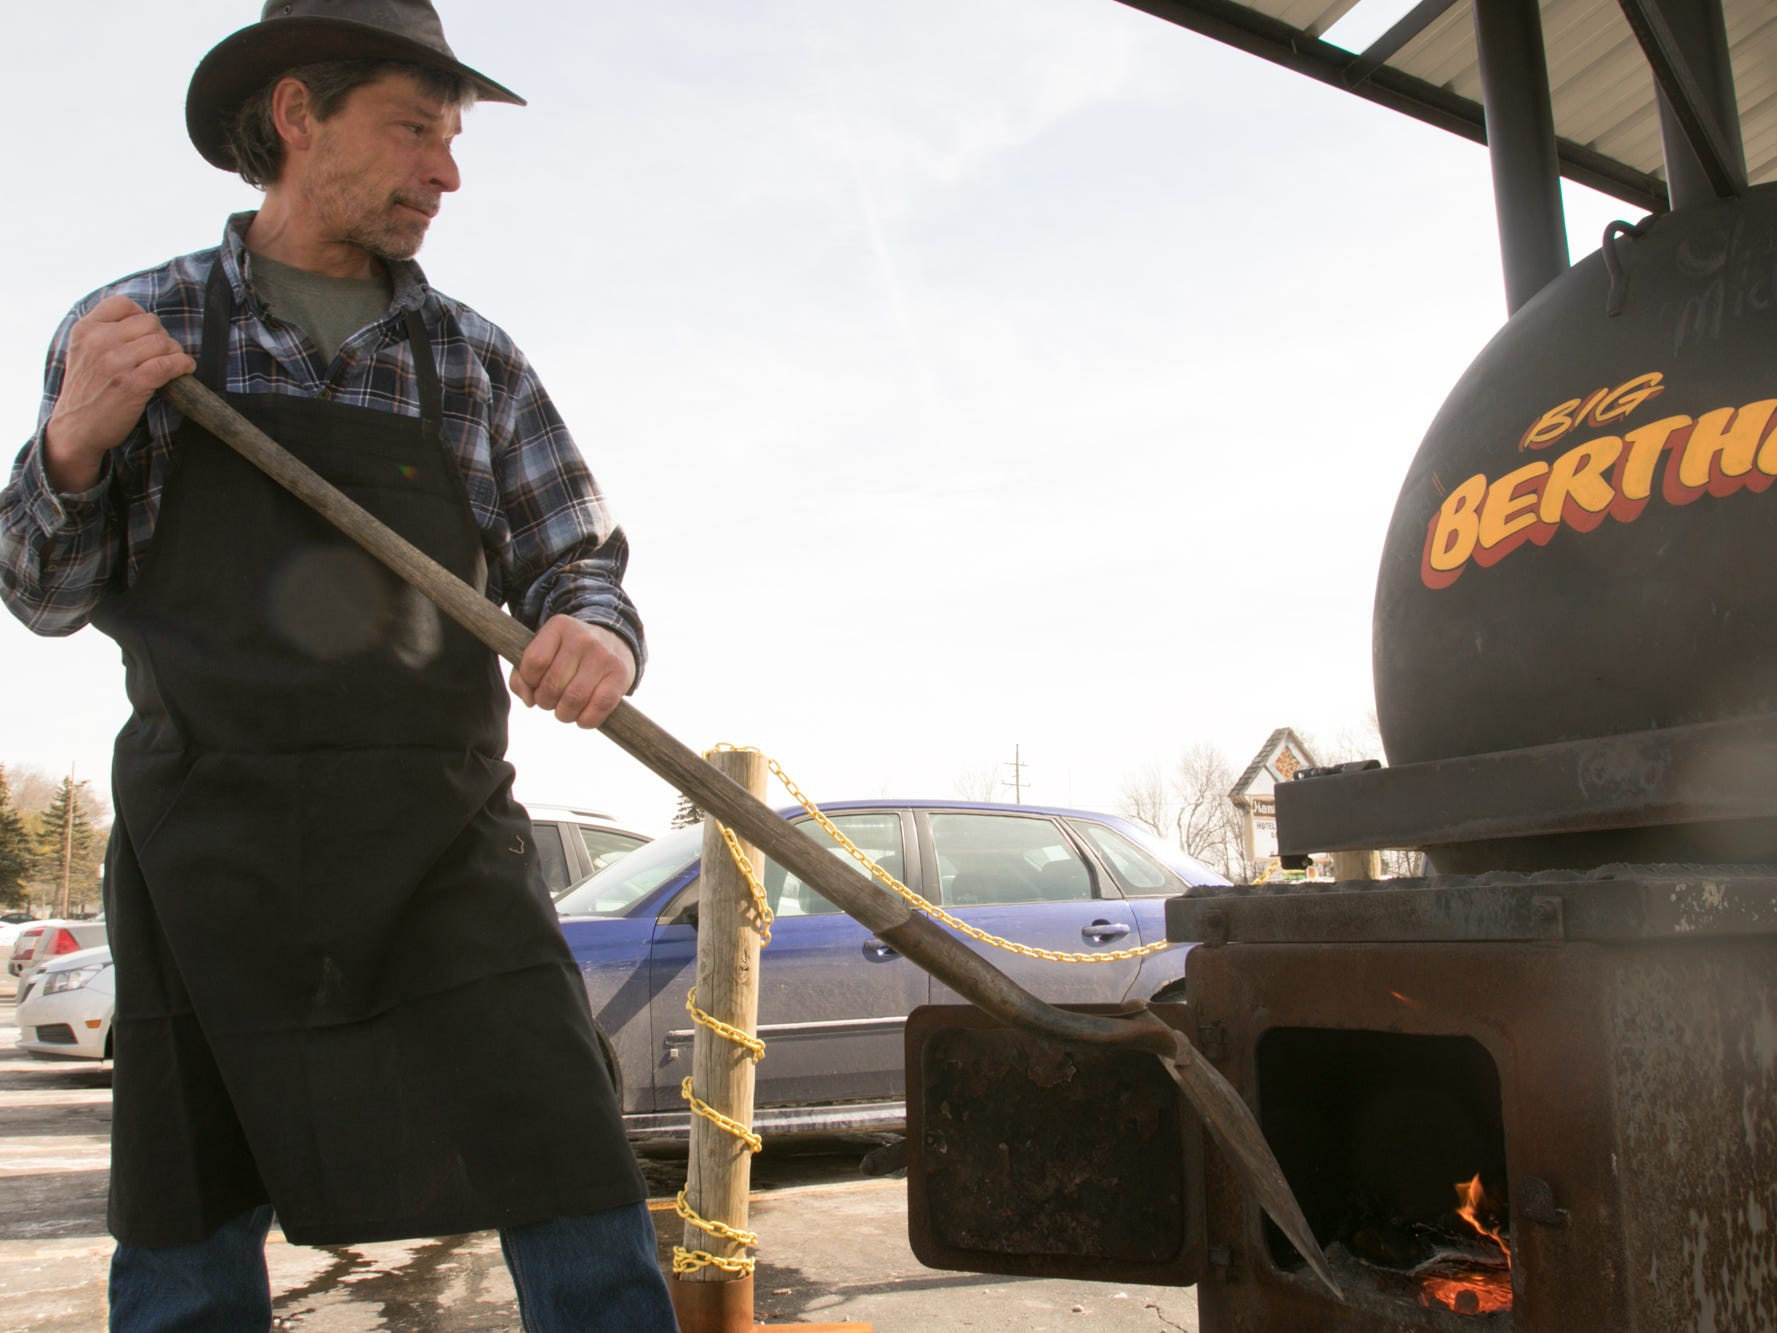 Pat Purdy, pit master at Hotel Hickman Chuckwagon BBQ, stokes the fire built with oak and wild cherry logs in the outdoor grill named 'Big Bertha' Friday, March 1, 2019.